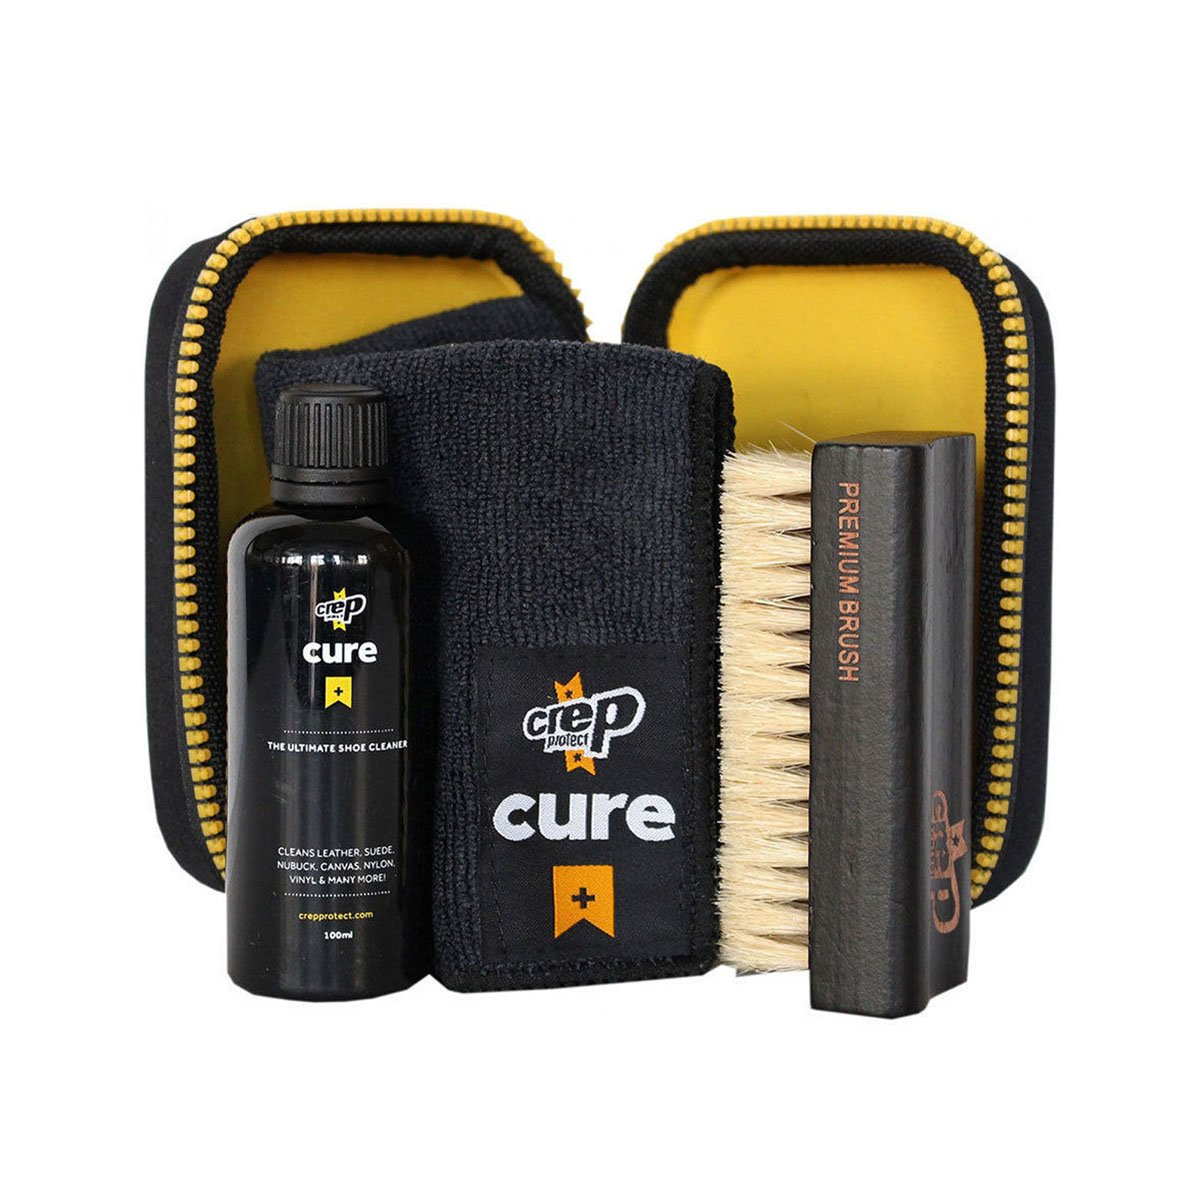 CURE TRAVEL CLEANING KIT